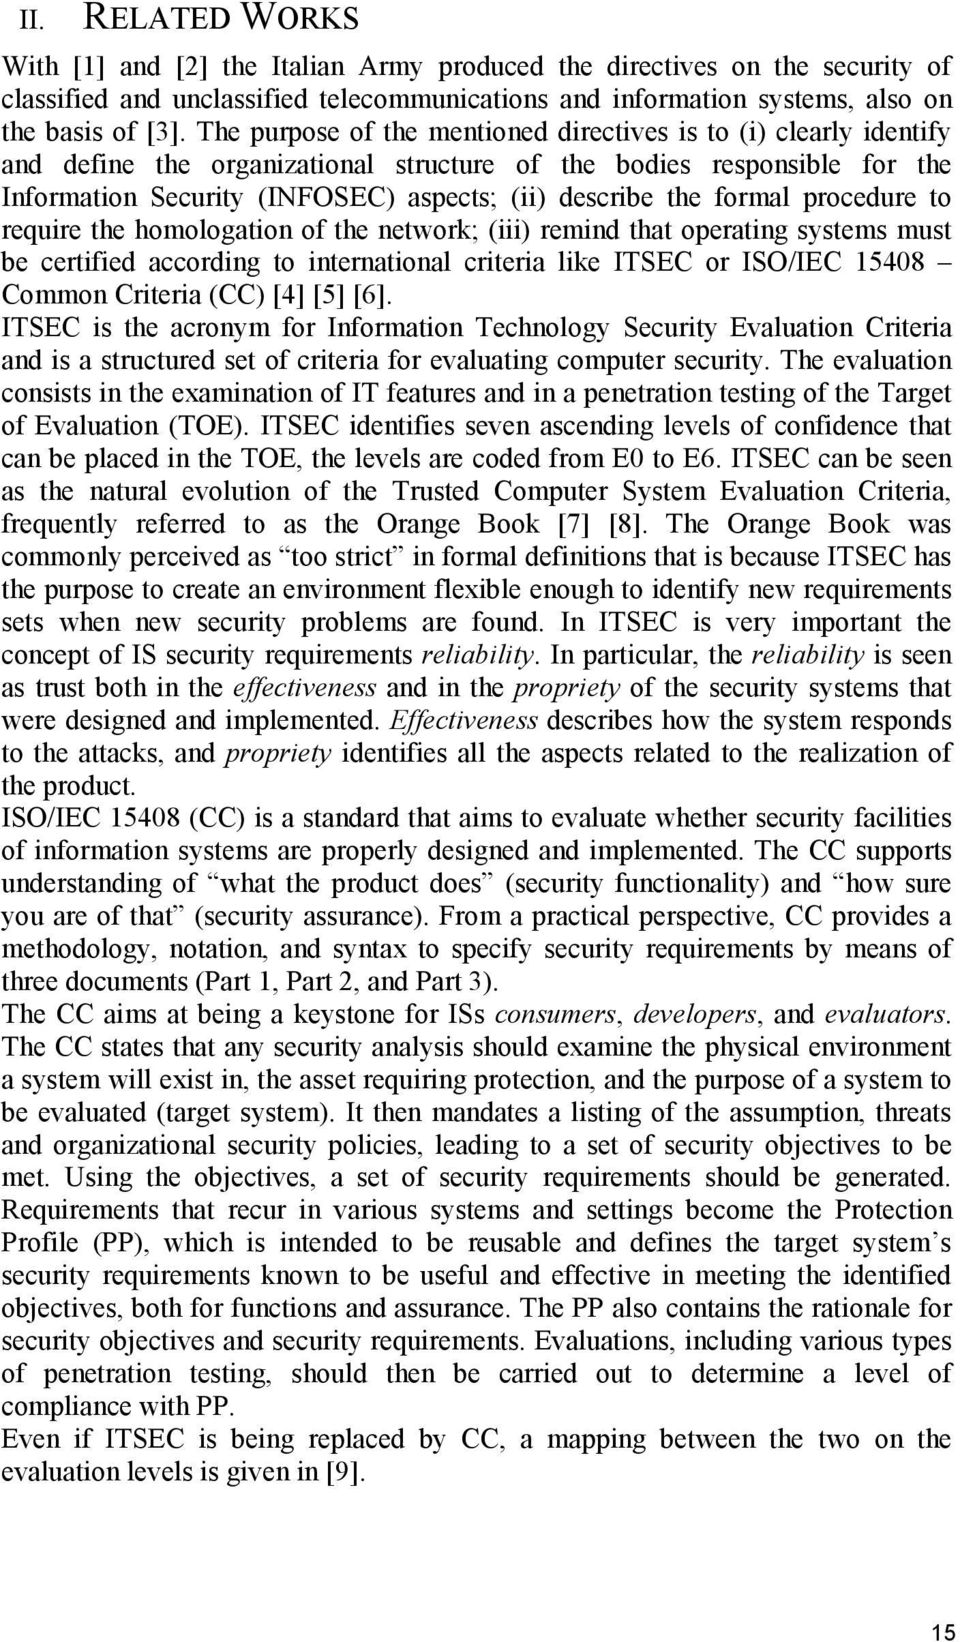 formal procedure to require the homologation of the network; (iii) remind that operating systems must be certified according to international criteria like ITSEC or ISO/IEC 15408 Common Criteria (CC)